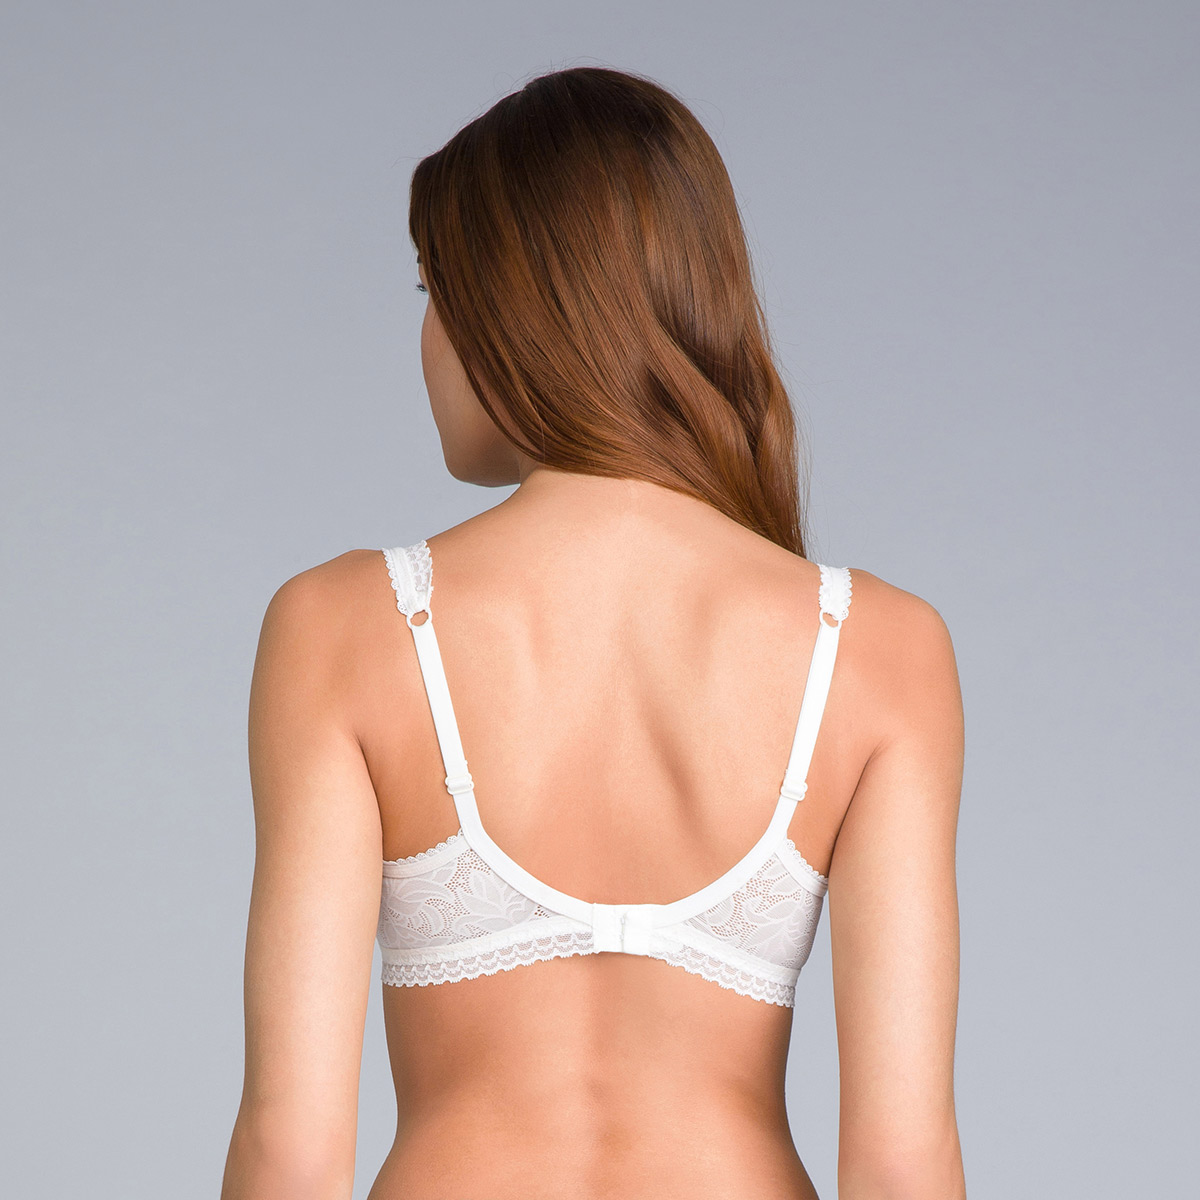 Soutien-gorge invisible balconnet blanc ivoire - Invisible Elegance, , PLAYTEX